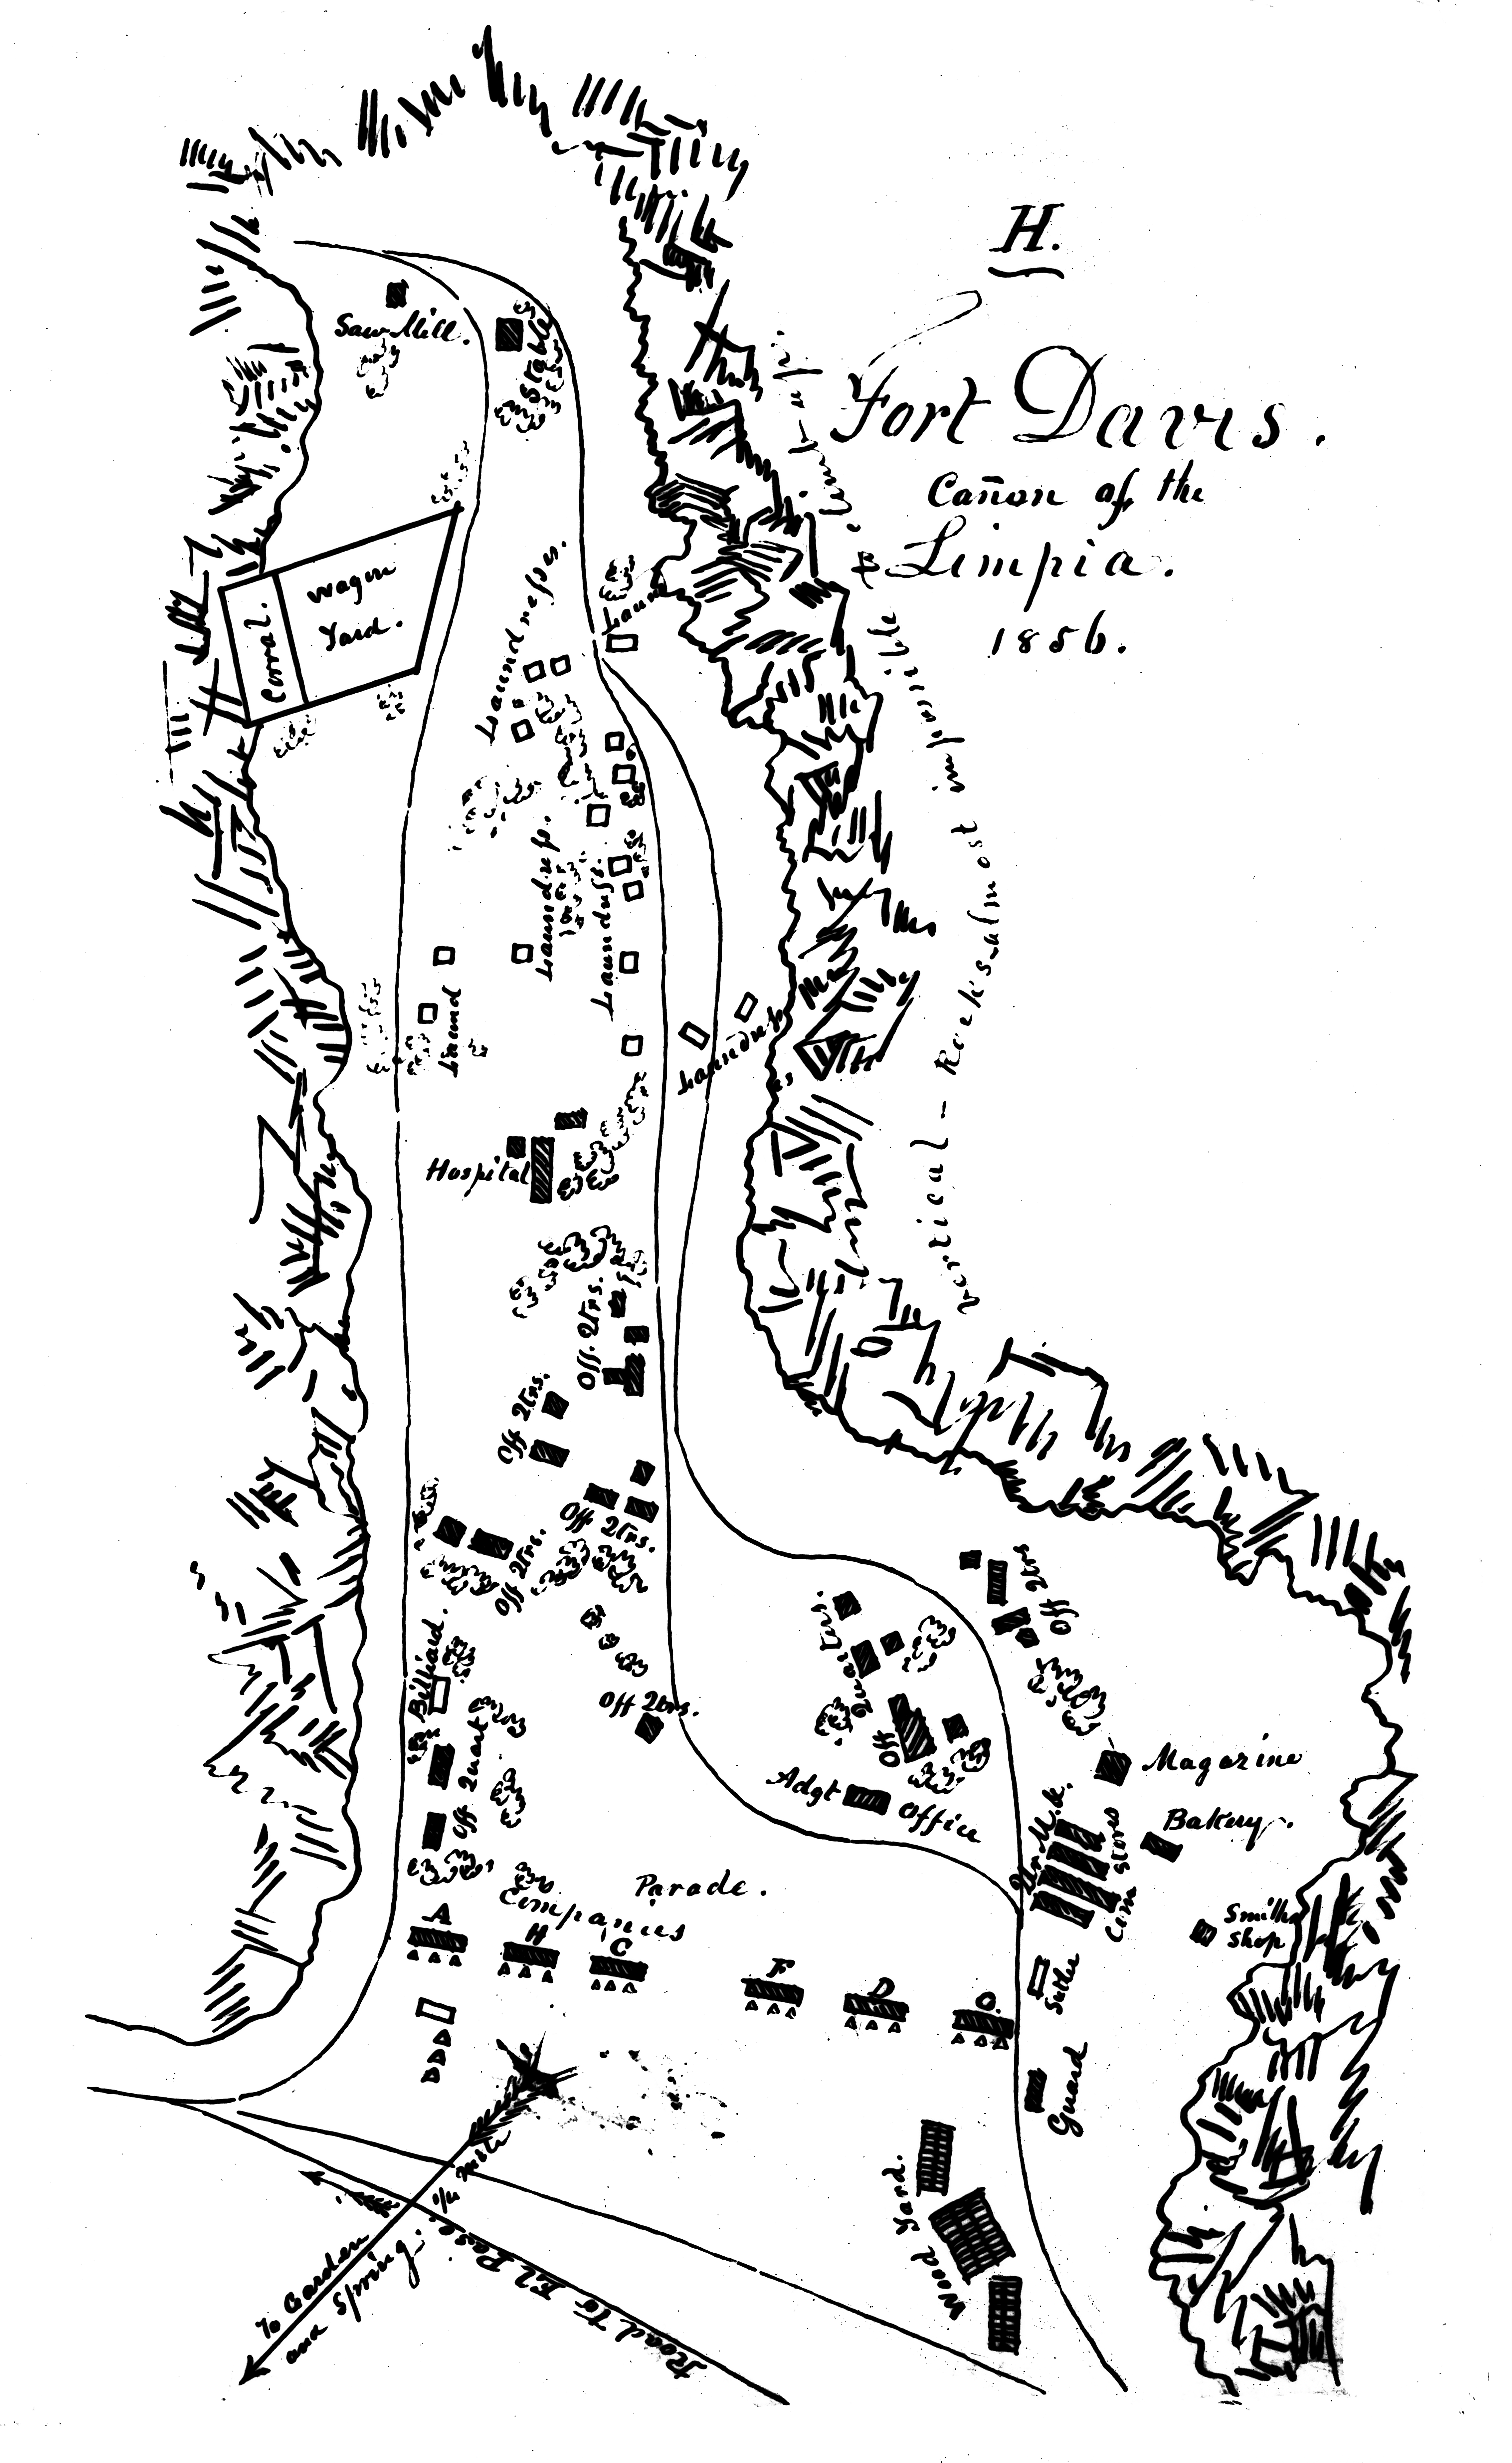 Sketch map of the Pre-Civil War Fort